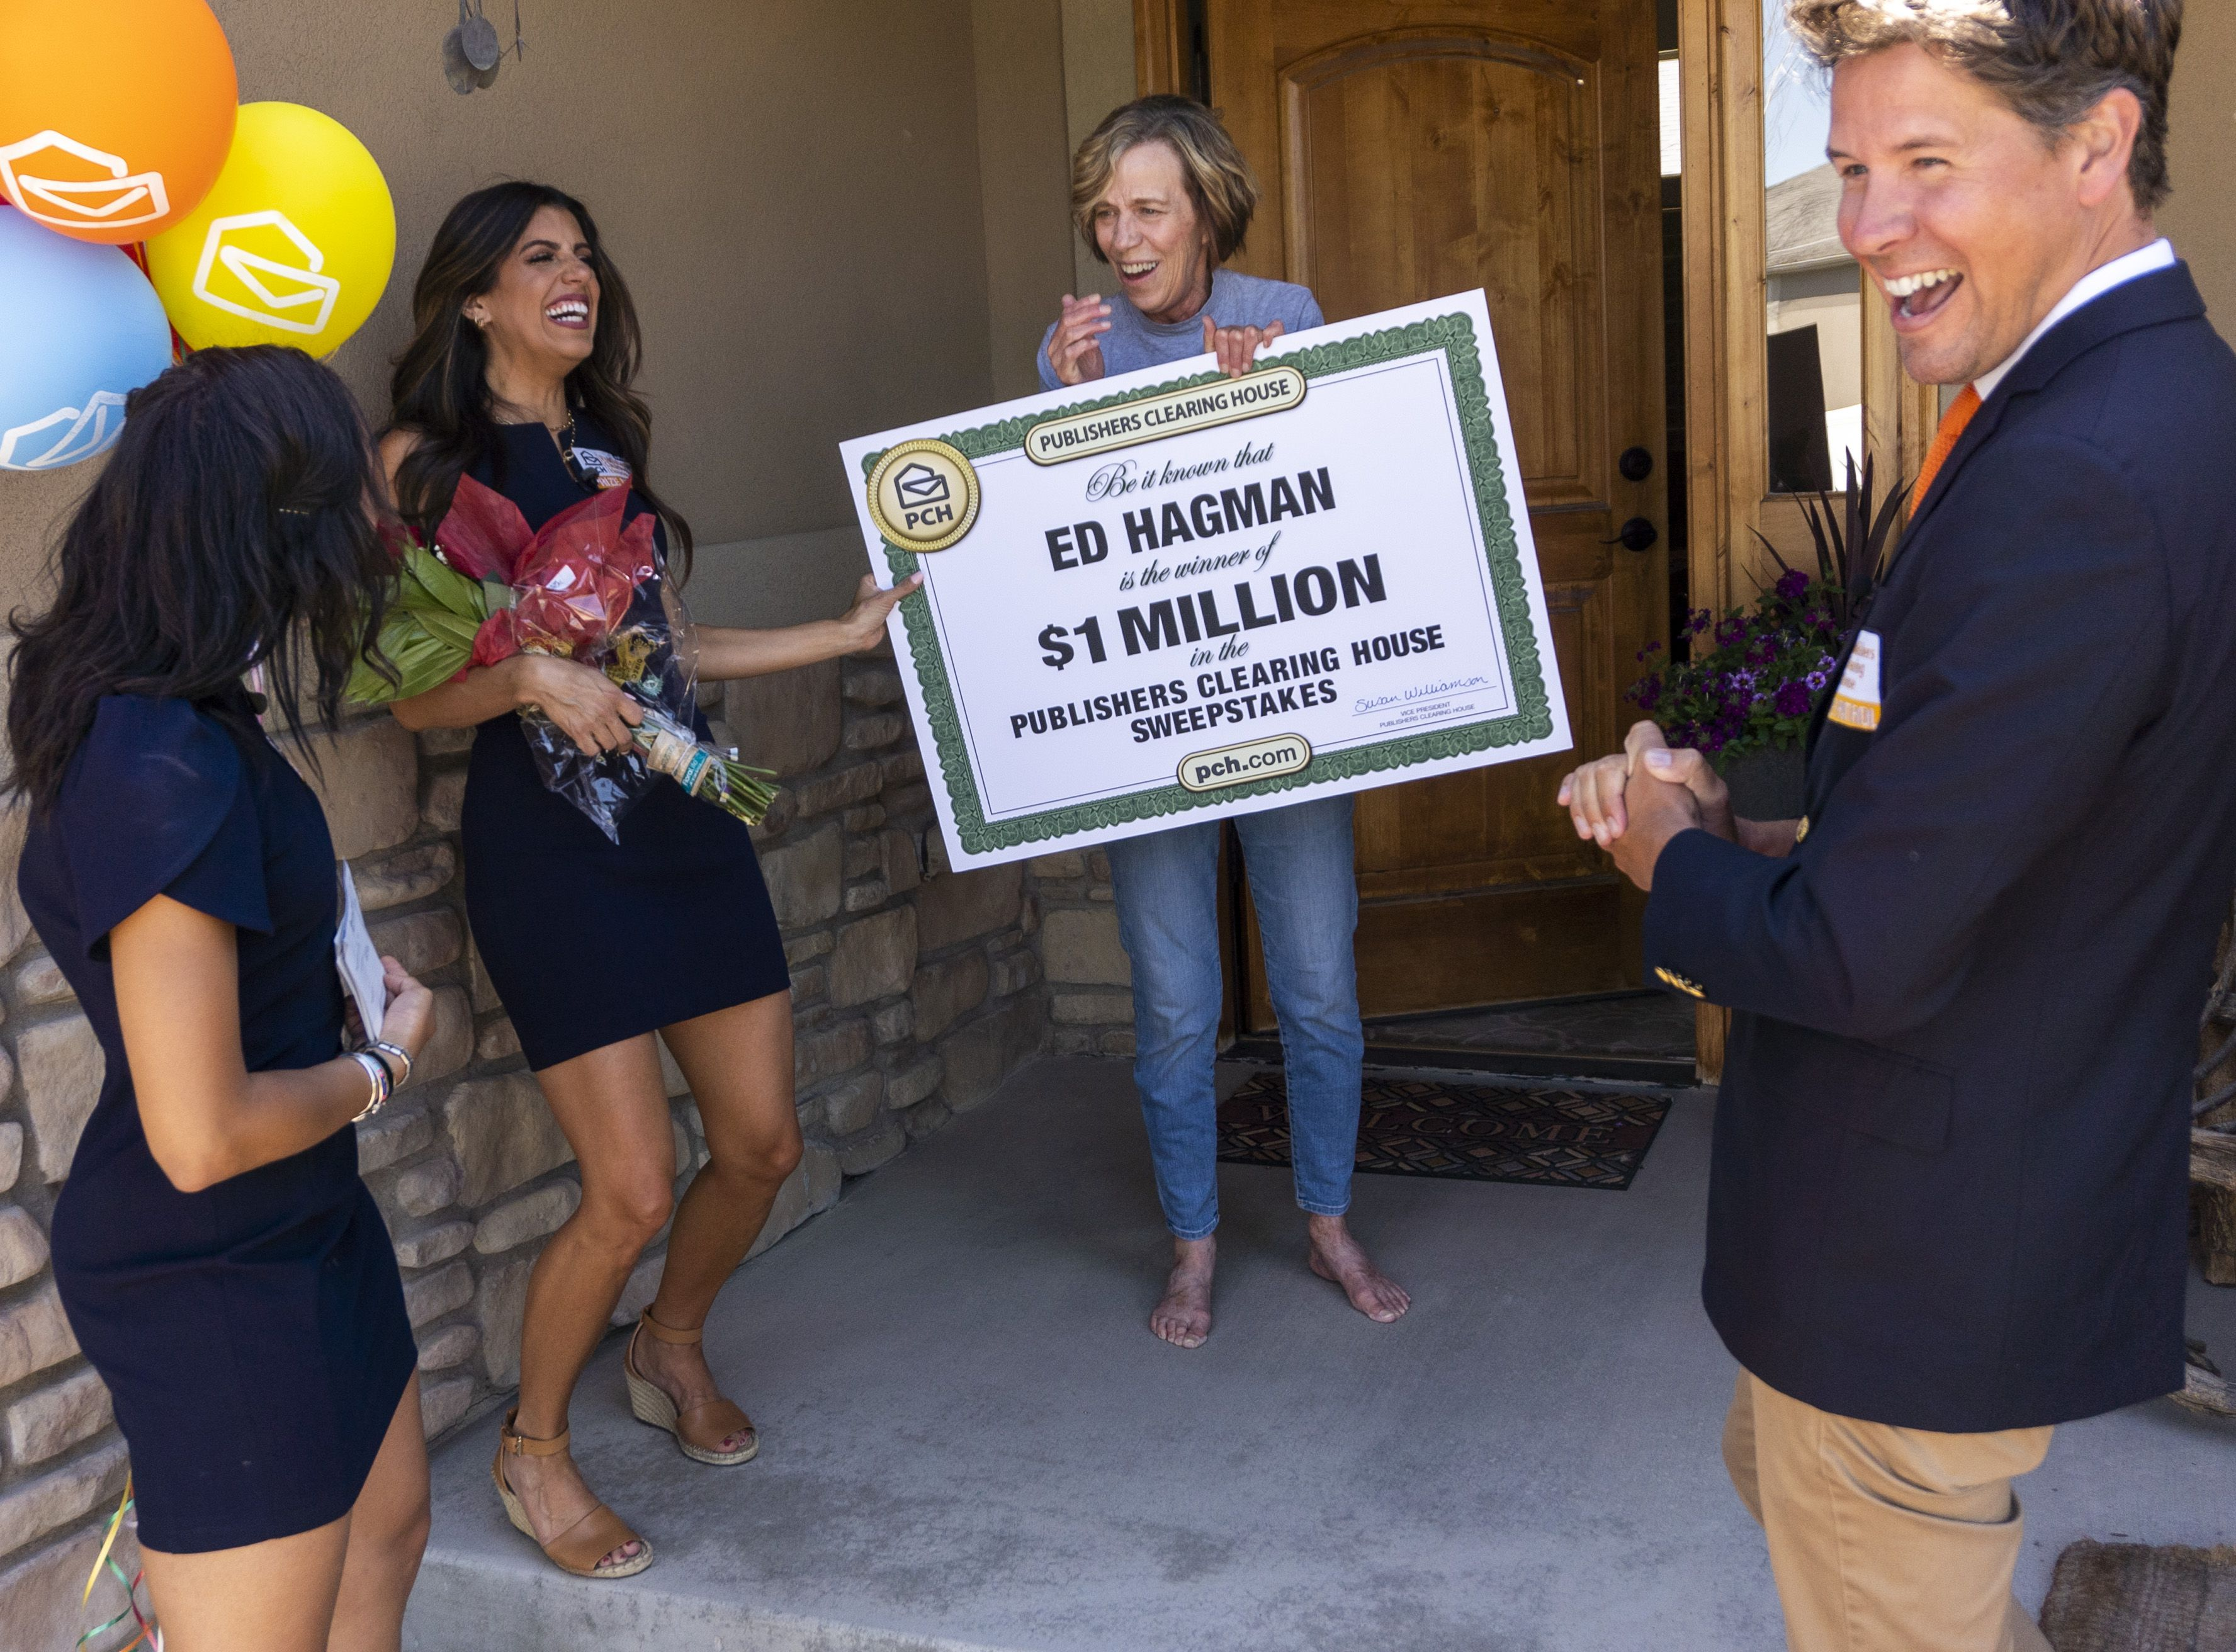 (Rick Egan | The Salt Lake Tribune) Members of the Prize Patrol from Publishers Clearing House, from left,  Bianca Quinnonez, Danielle Lam and  Howie Guja surprise Denise Hagman (center) with the news that she and her husband won $1,000,000, at her home in Herriman, on Friday, May 28th